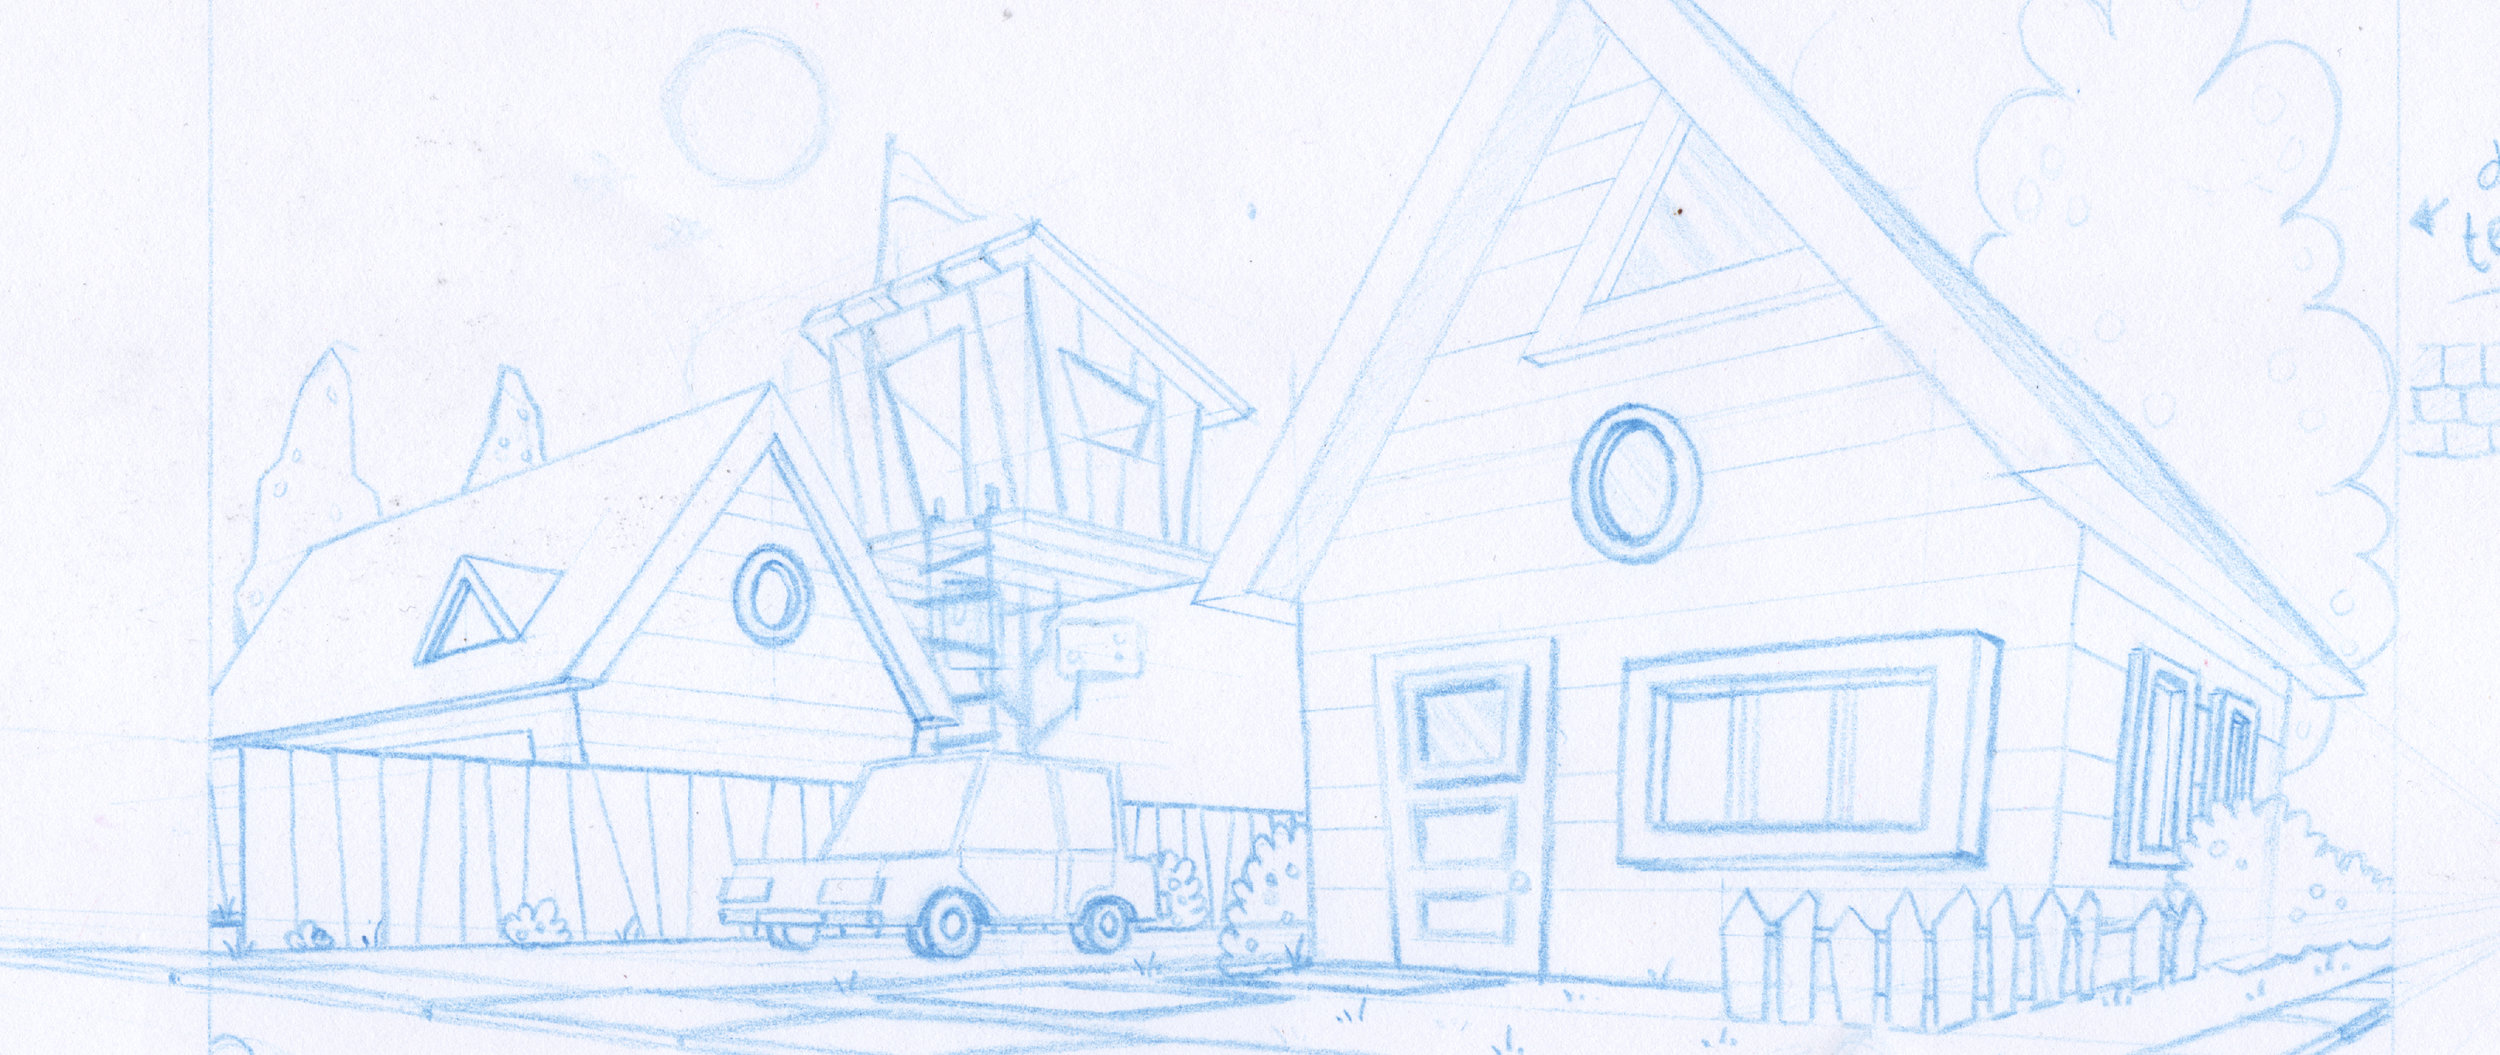 Neighborhood_Sketch.jpg